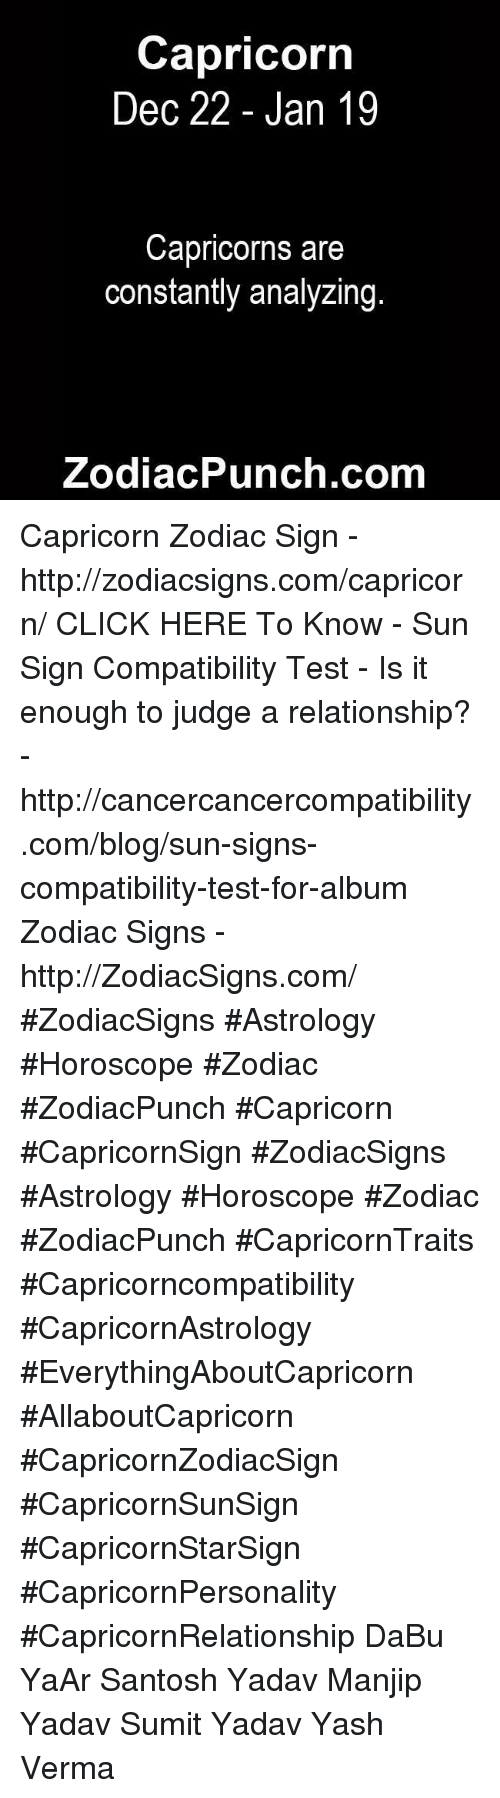 How to Check Zodiac Sign Compatibility images